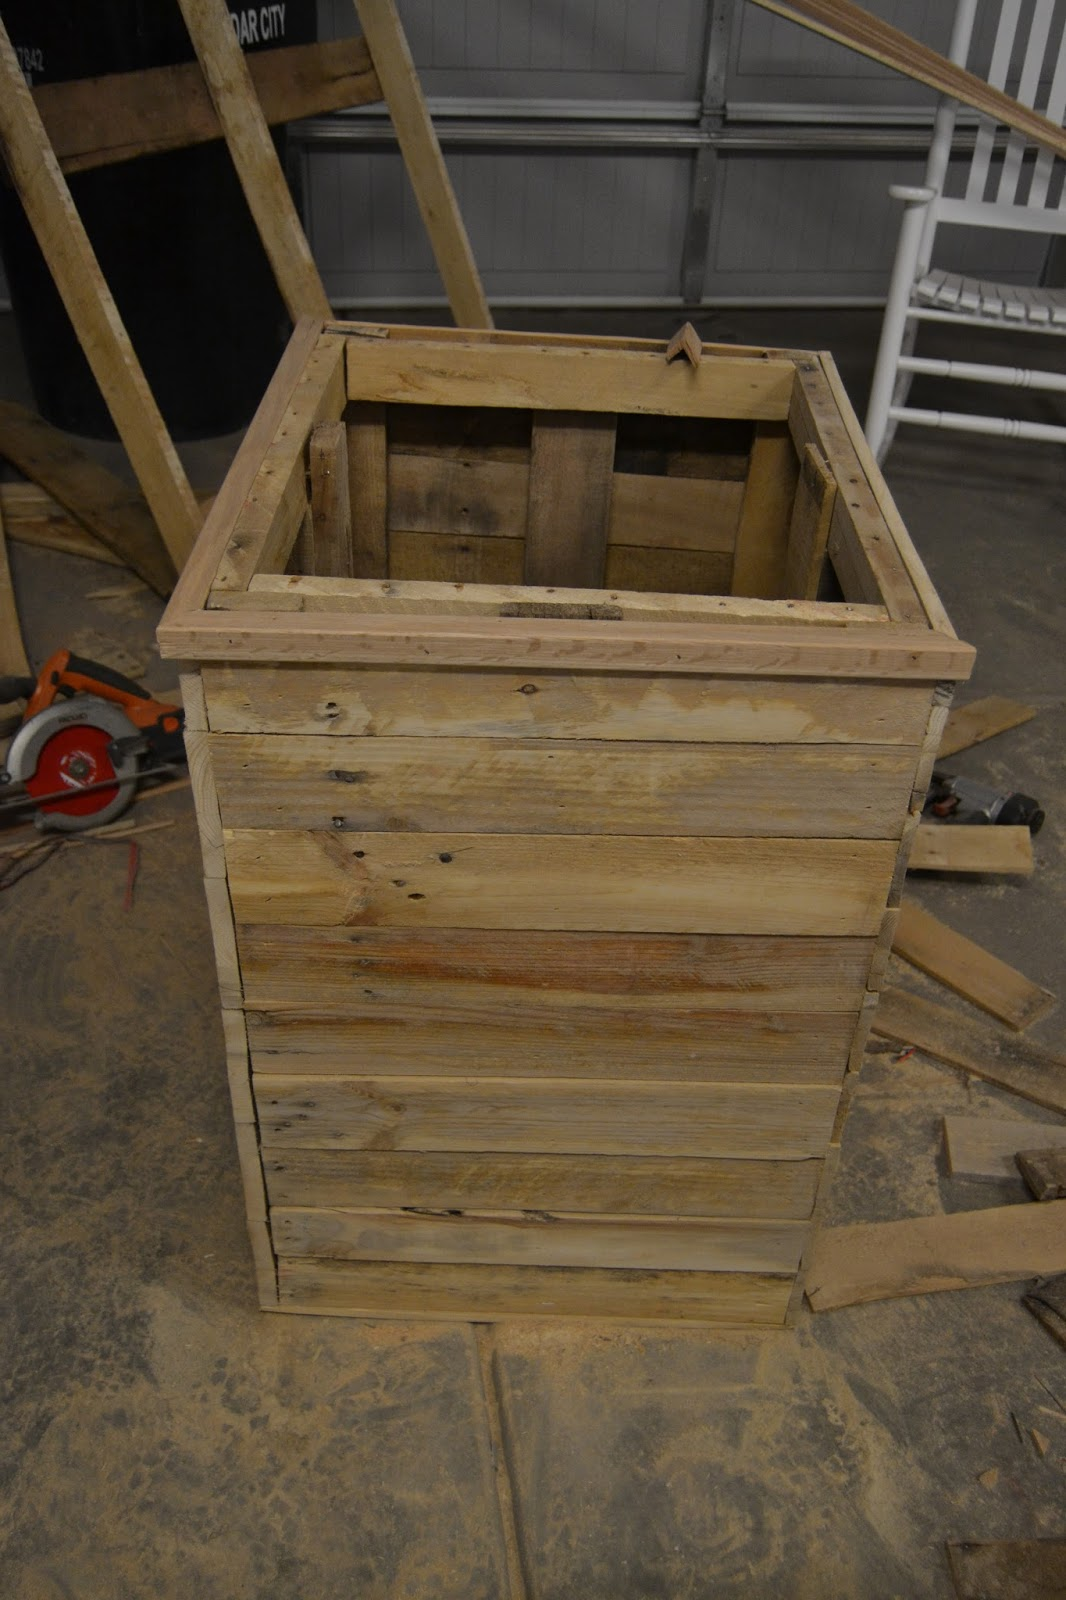 Diy Planter Box From Pallets Diy Massive Planter Boxes Made From Pallets Lou Lou Girls